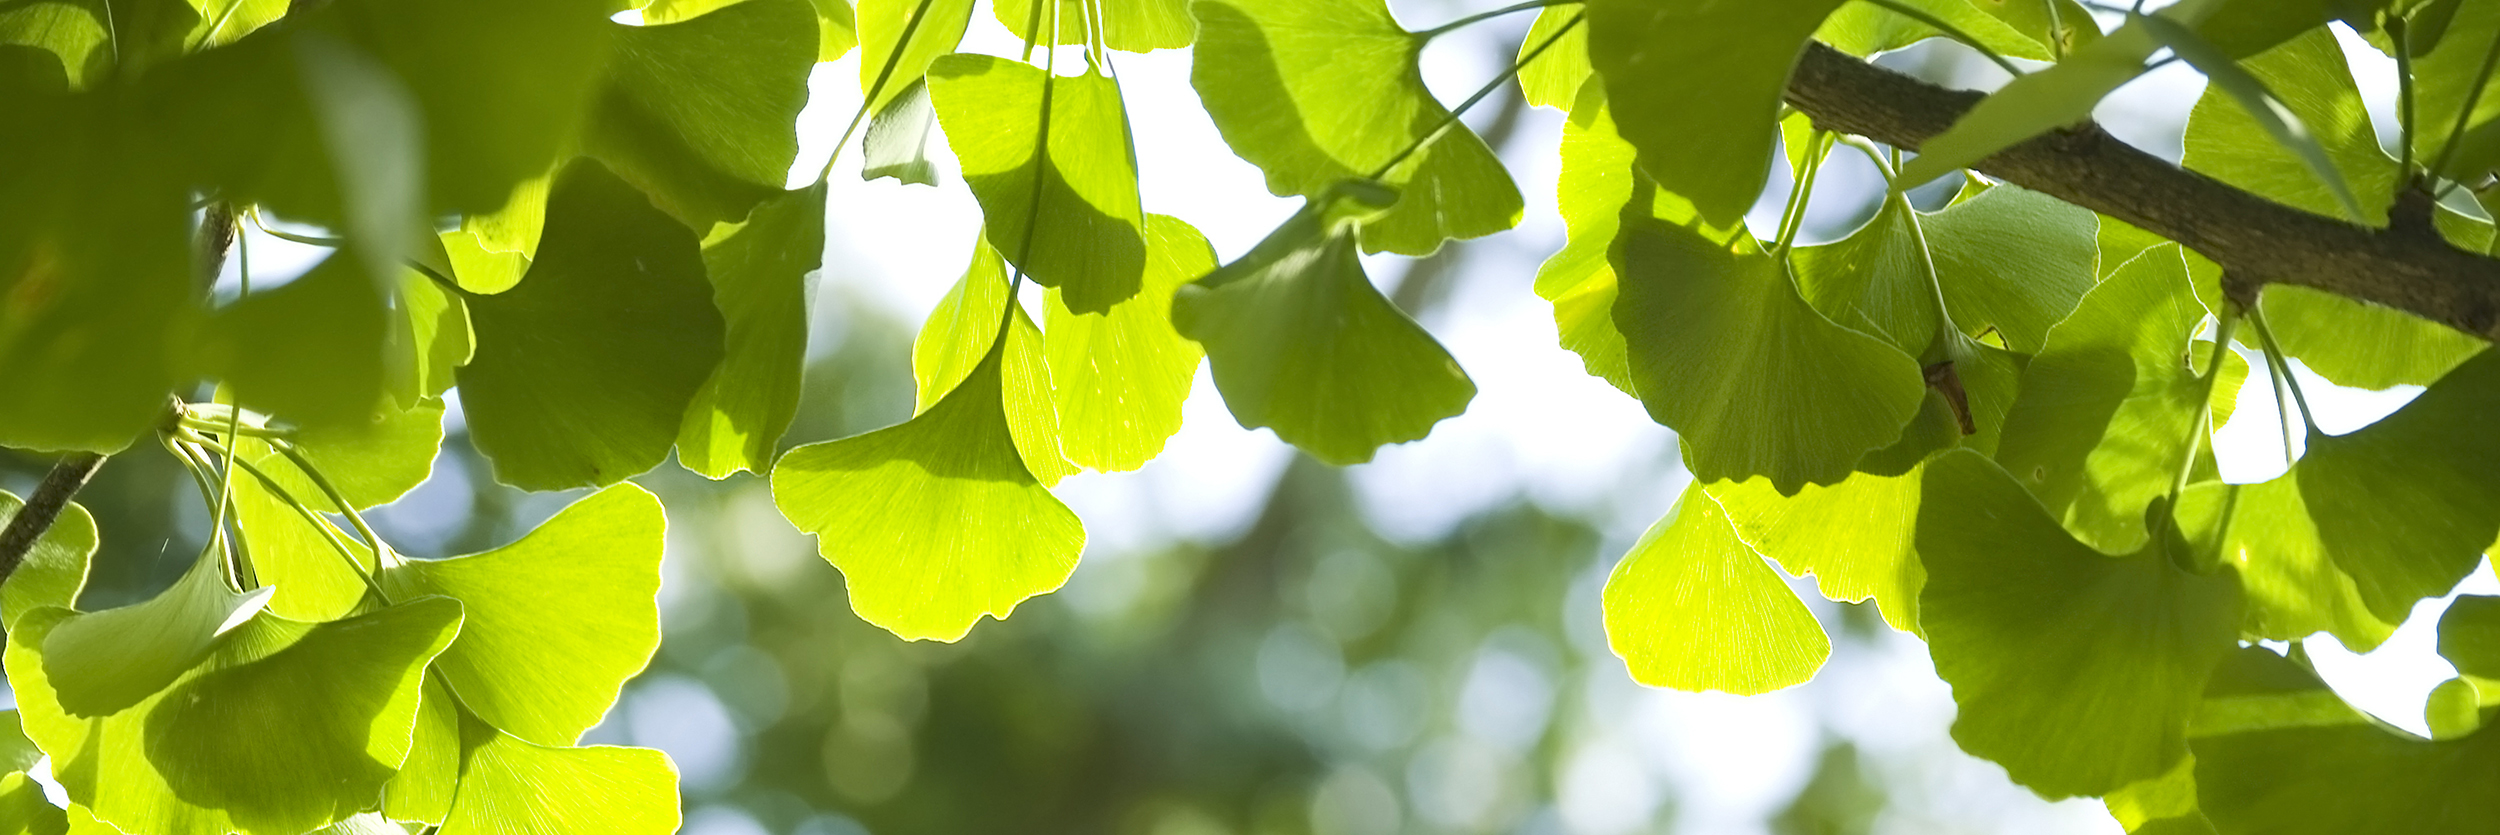 Ginkgo is an ancient tree, and a symbol of hope.